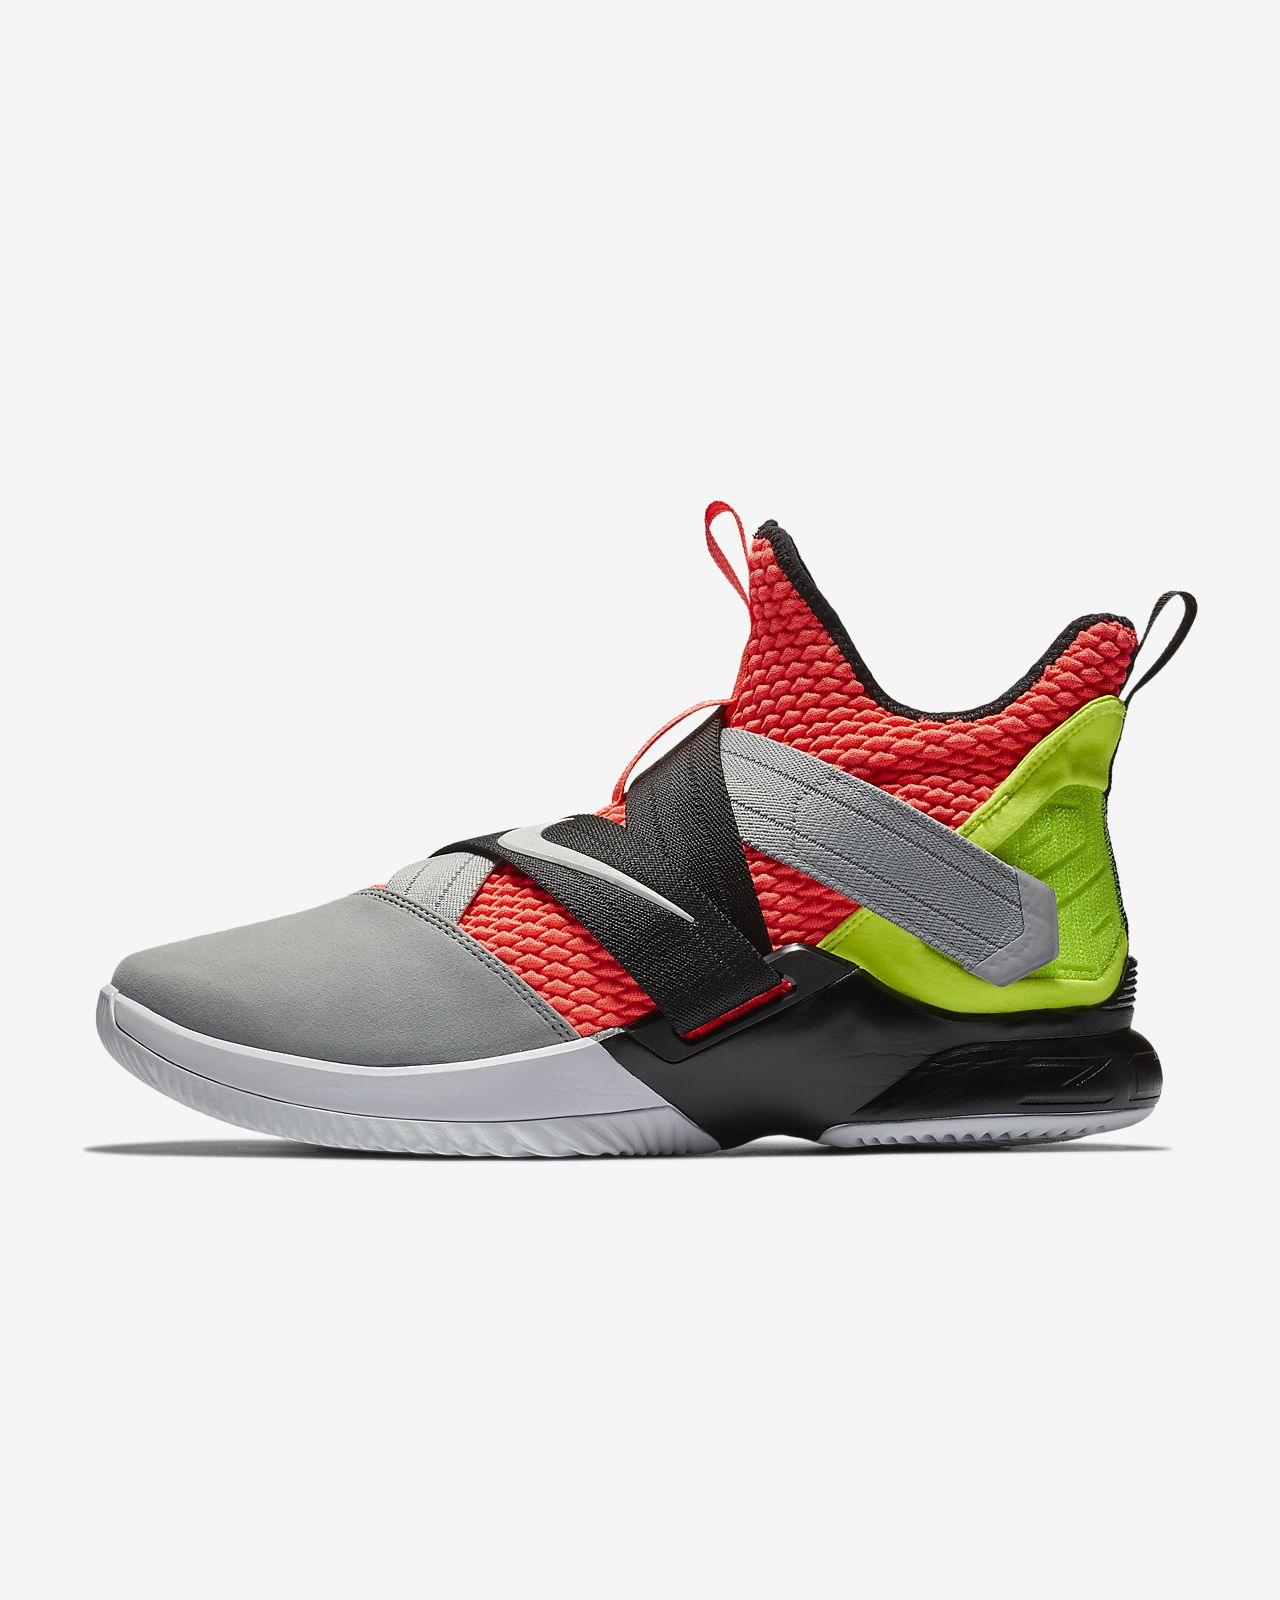 timeless design 718b6 ed636 LeBron Soldier 12 SFG Basketball Shoe